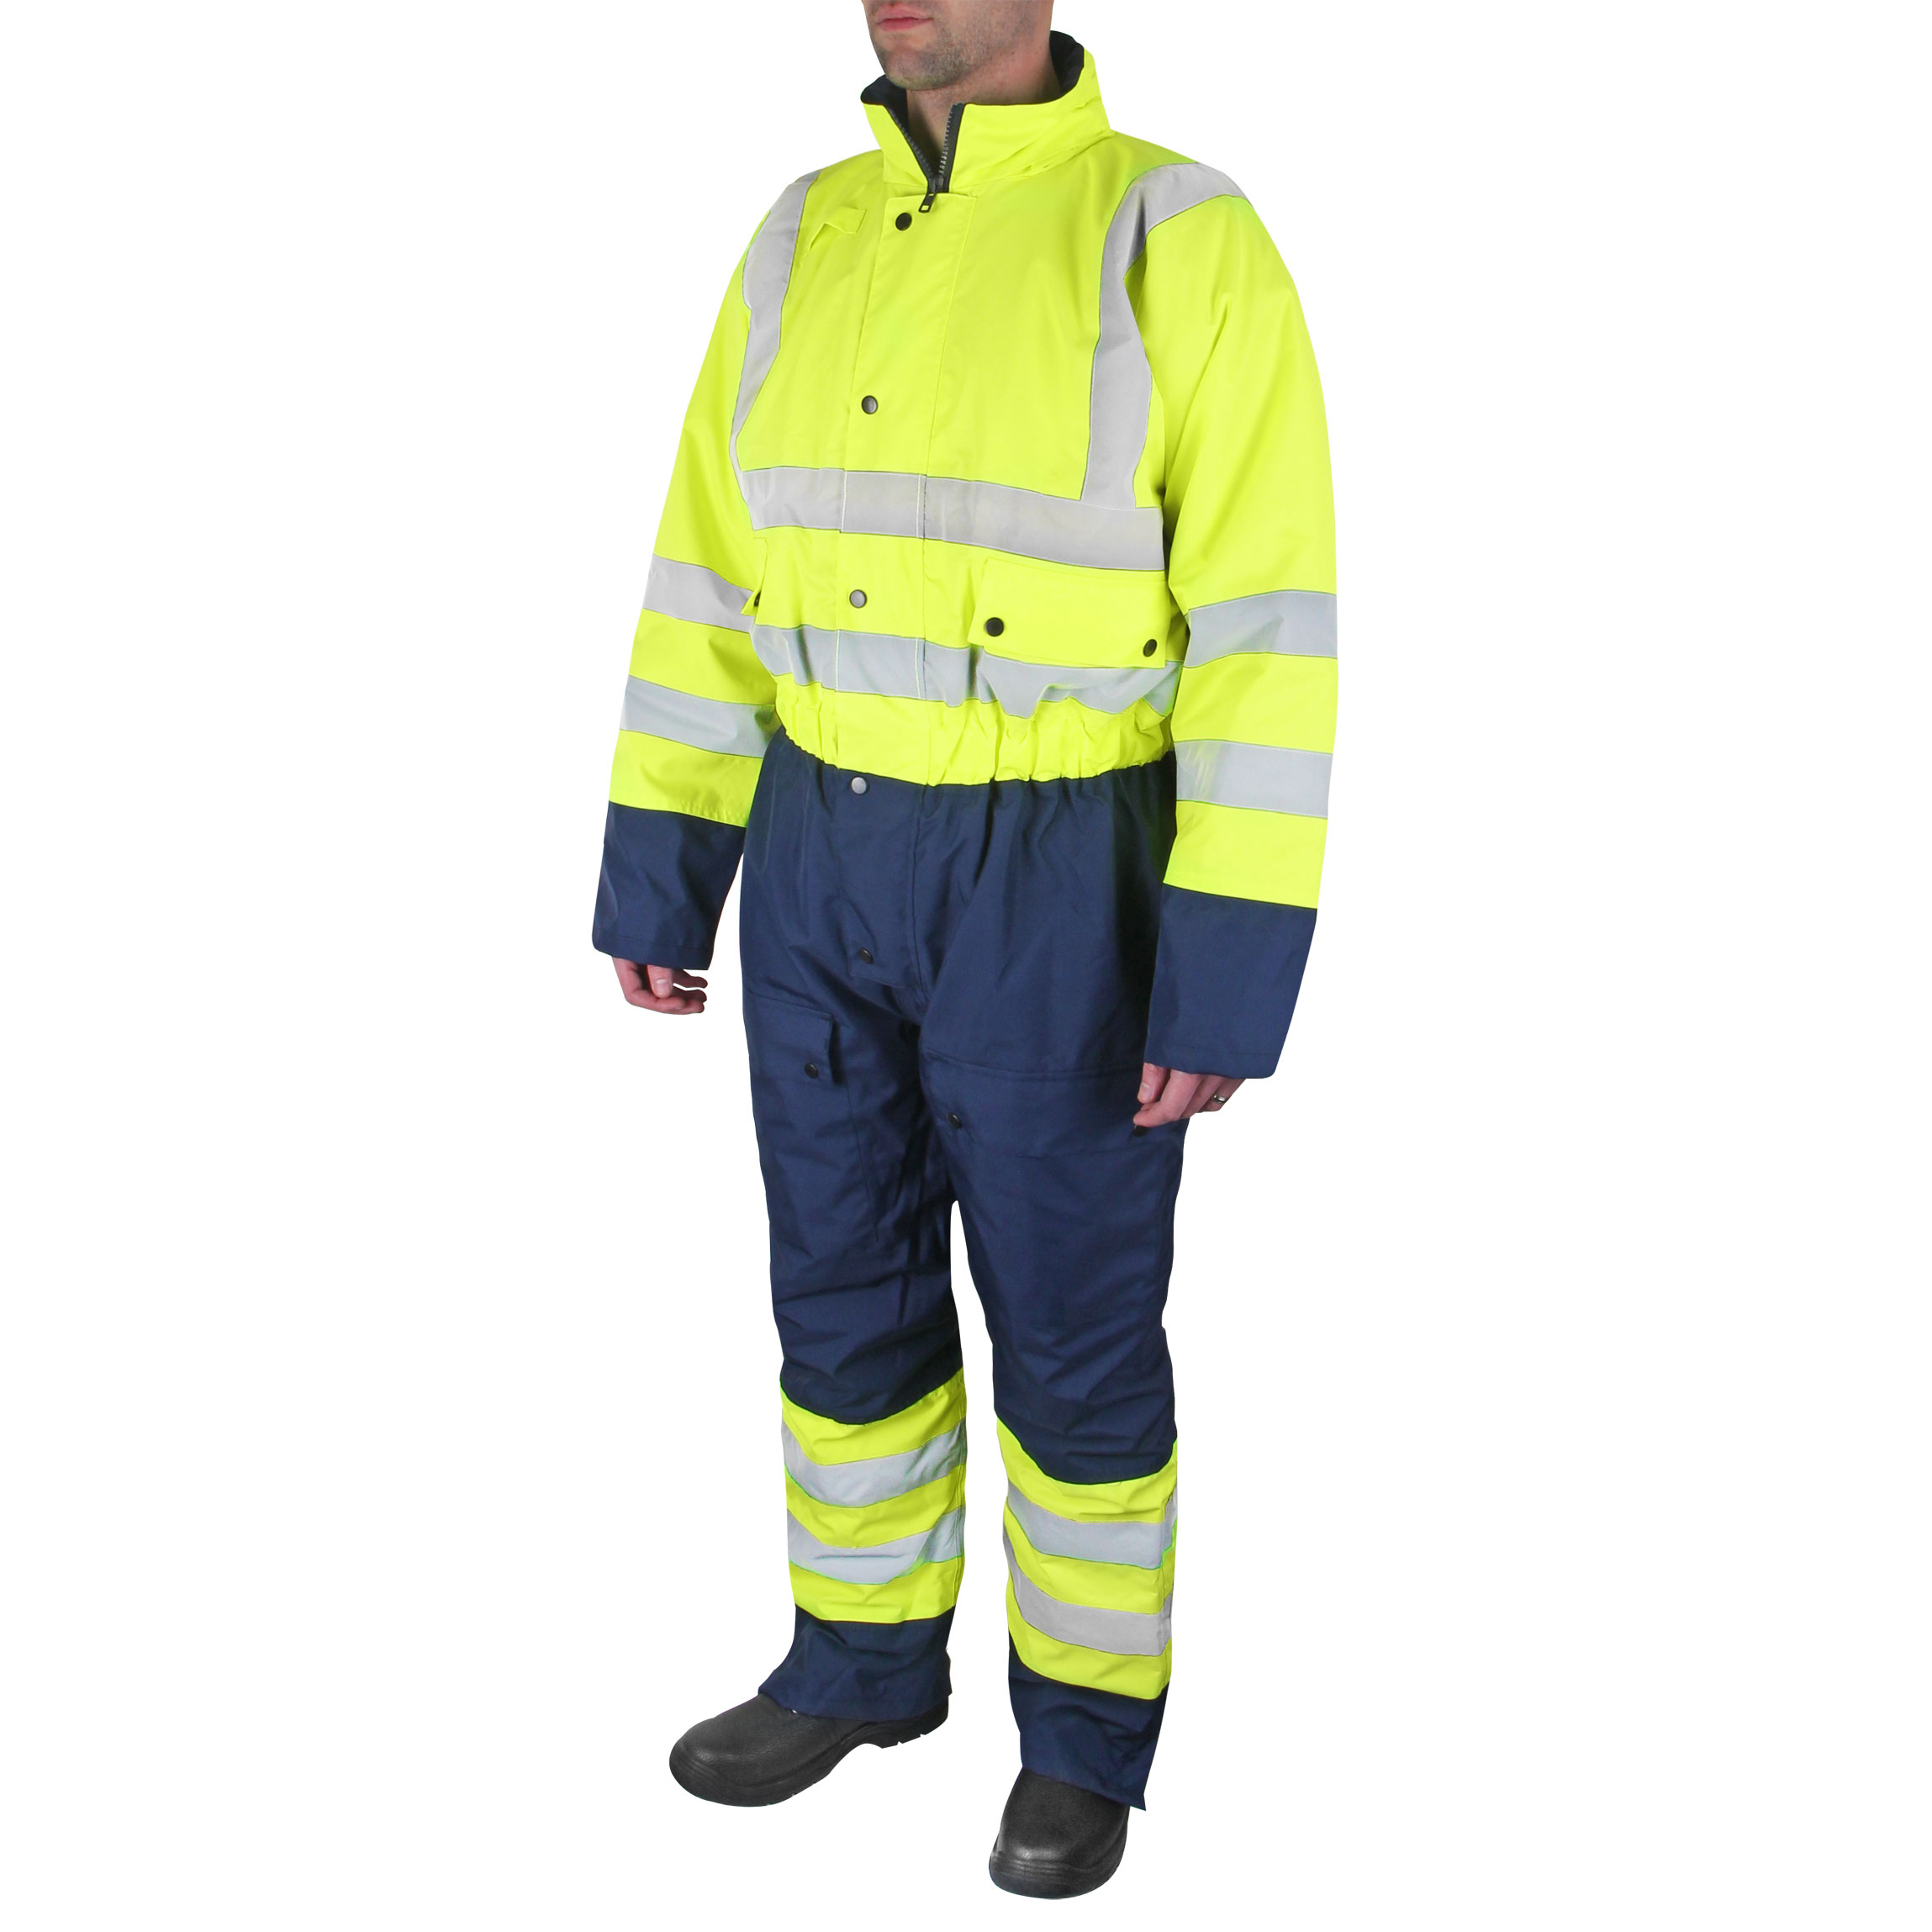 B-Seen Hi-Vis Thermal Waterproof Coveralls L Yellow/Navy Ref BD900SYNL *Up to 3 Day Leadtime*